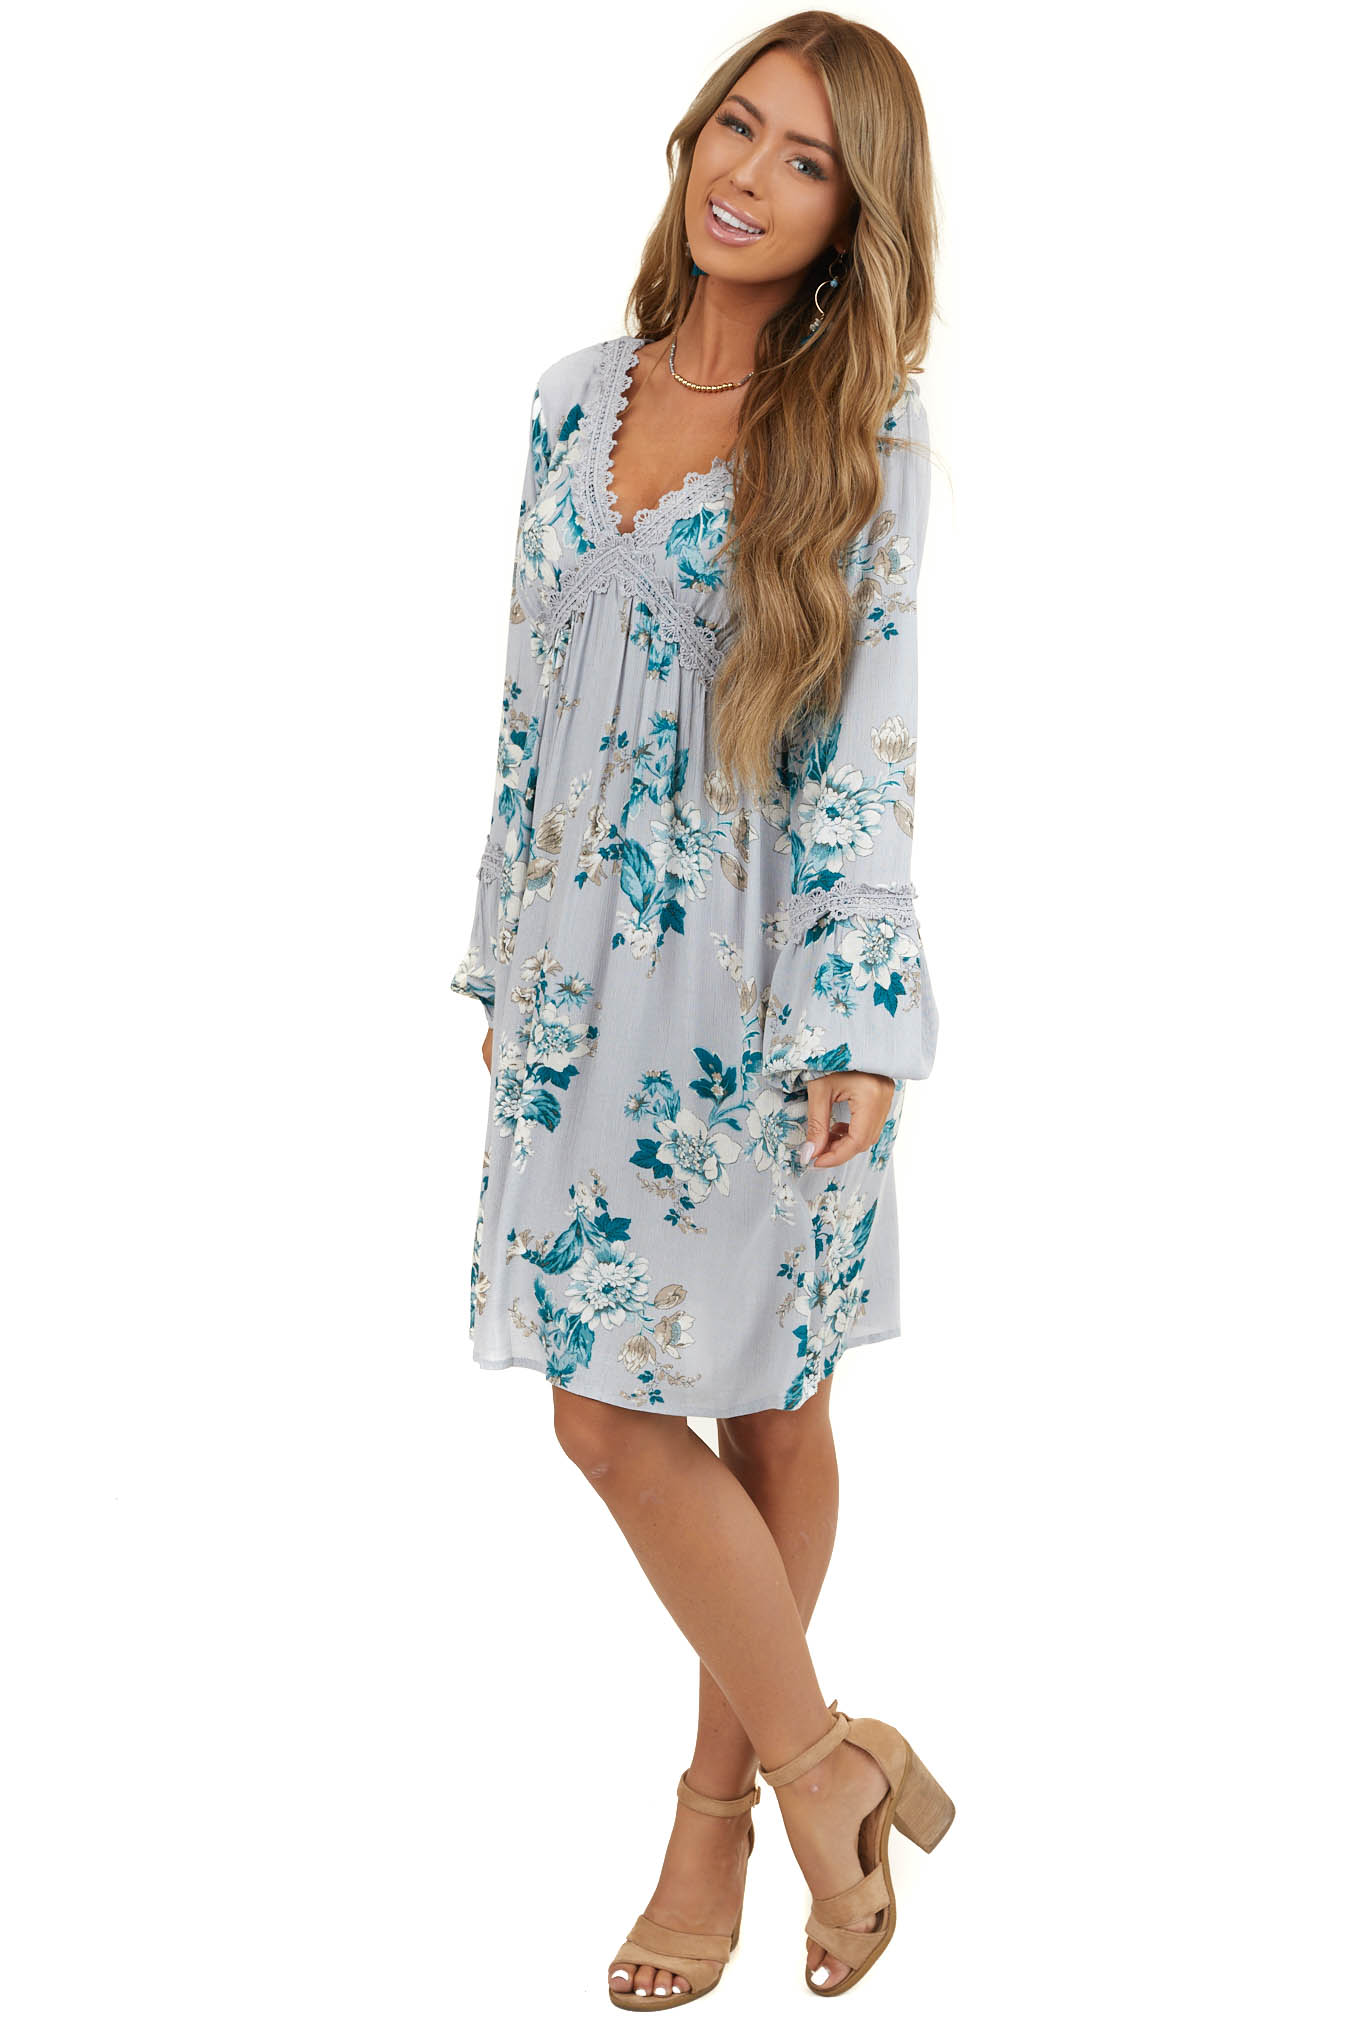 Pale Blue Floral Long Sleeve Dress with Crochet Lace Detail